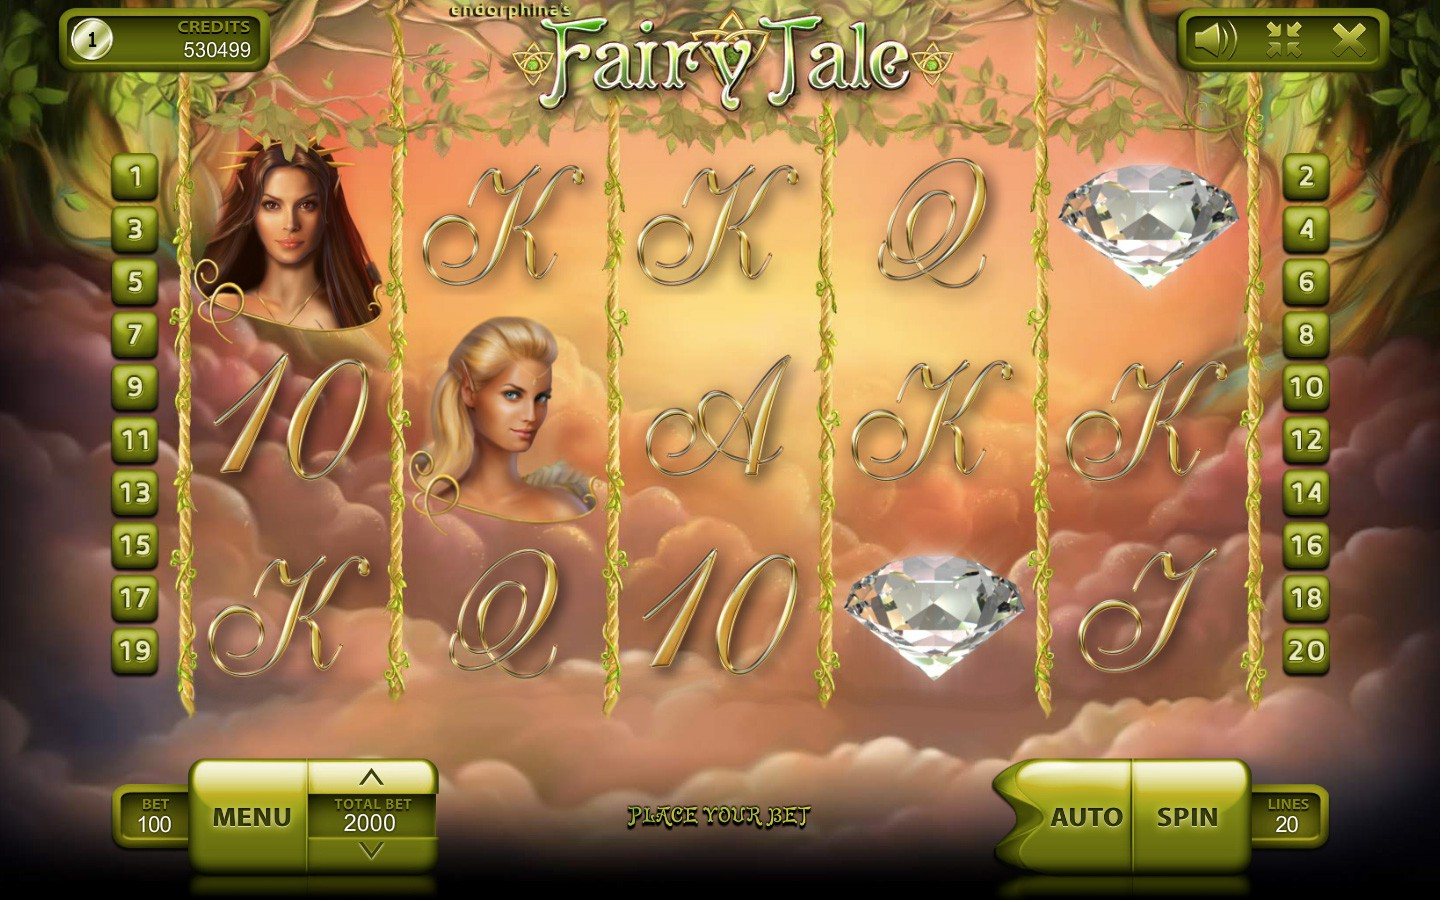 Fairy Tale Slot Machine - Online Casino Game by Endorphina